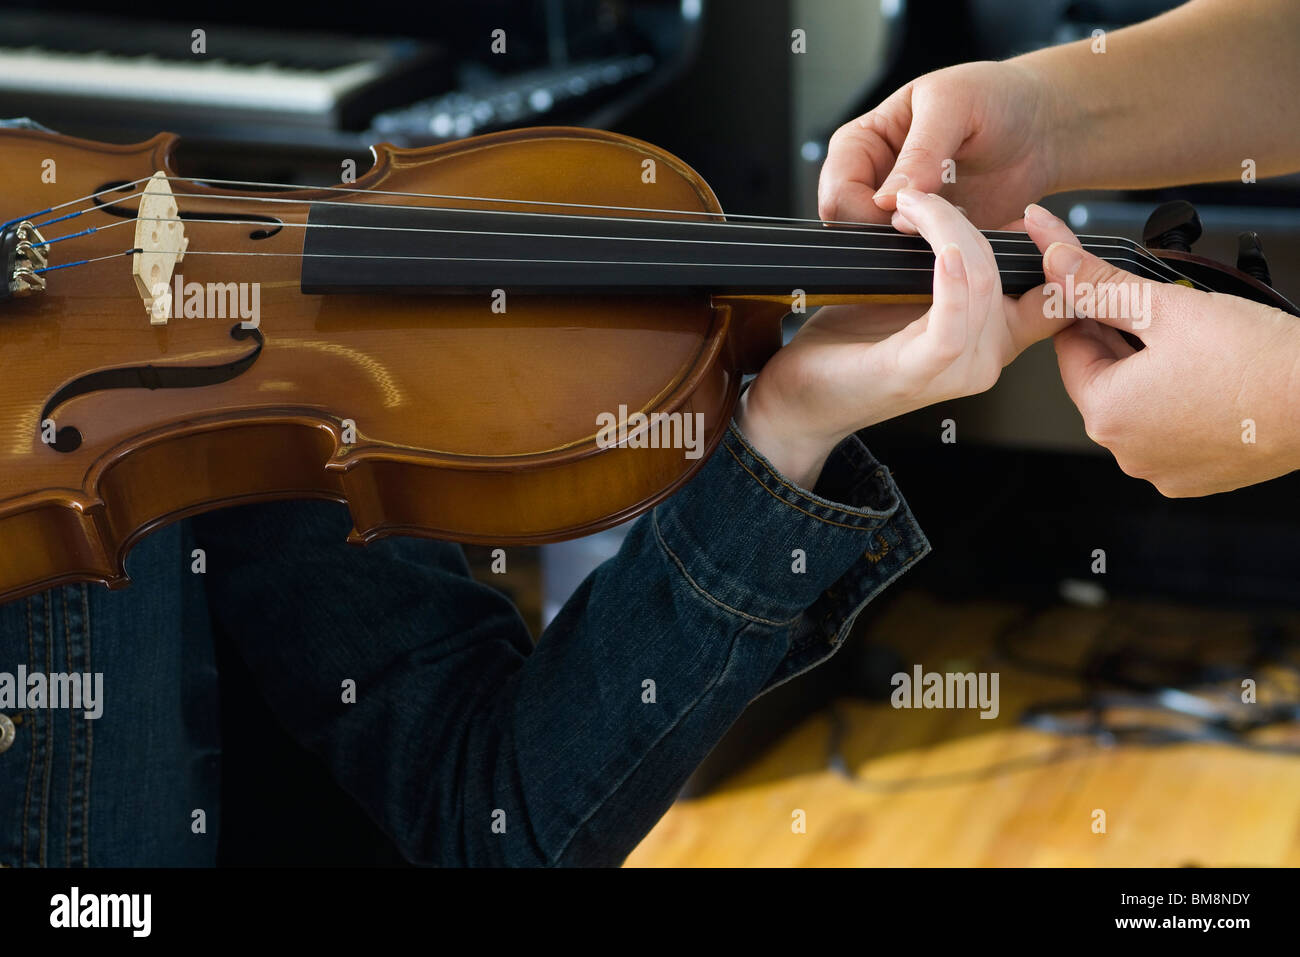 Learning to play the violin - Stock Image